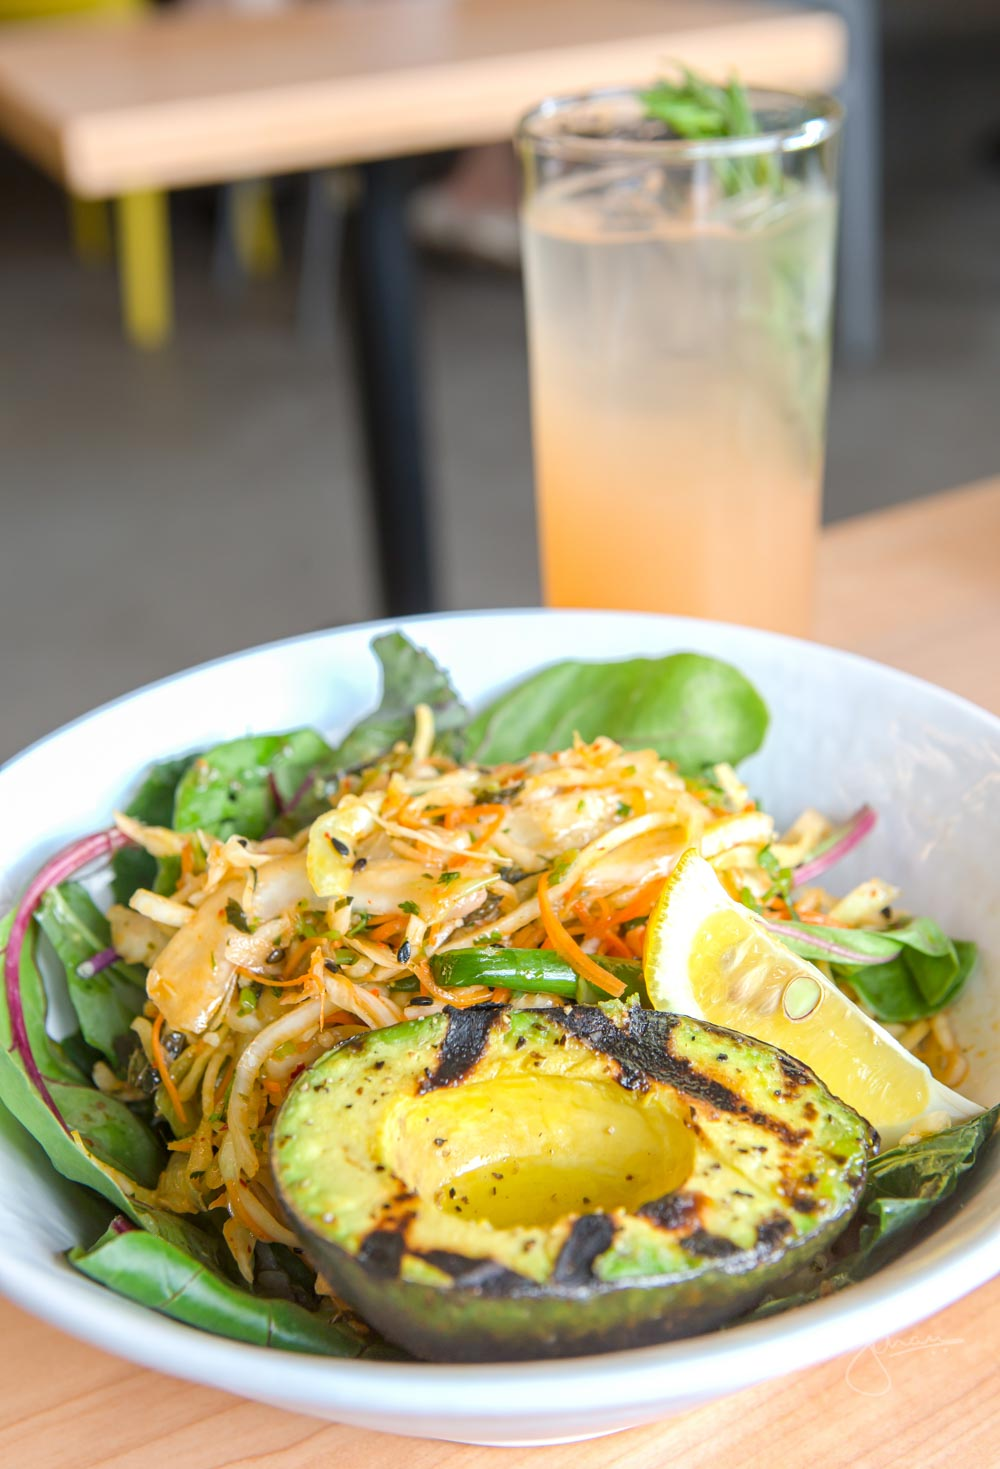 Everyday Bowl: Rice + Power Greens + 1 market side + grilled avo